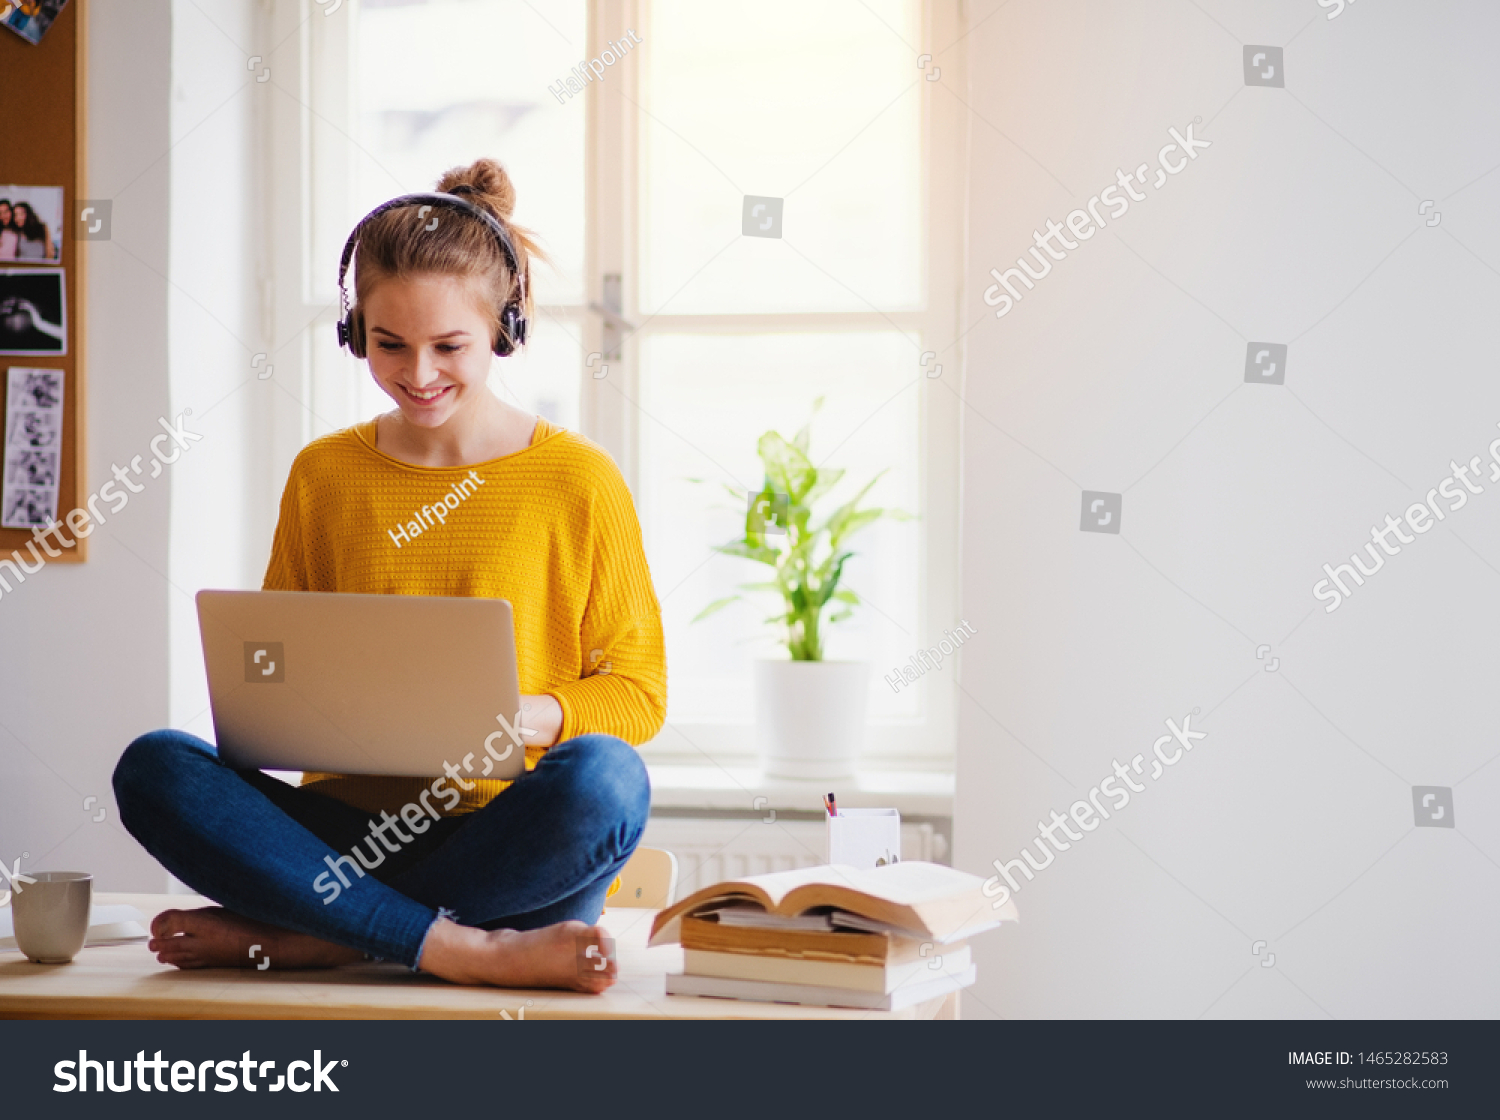 A young female student sitting at the table, using headphones when studying. #1465282583